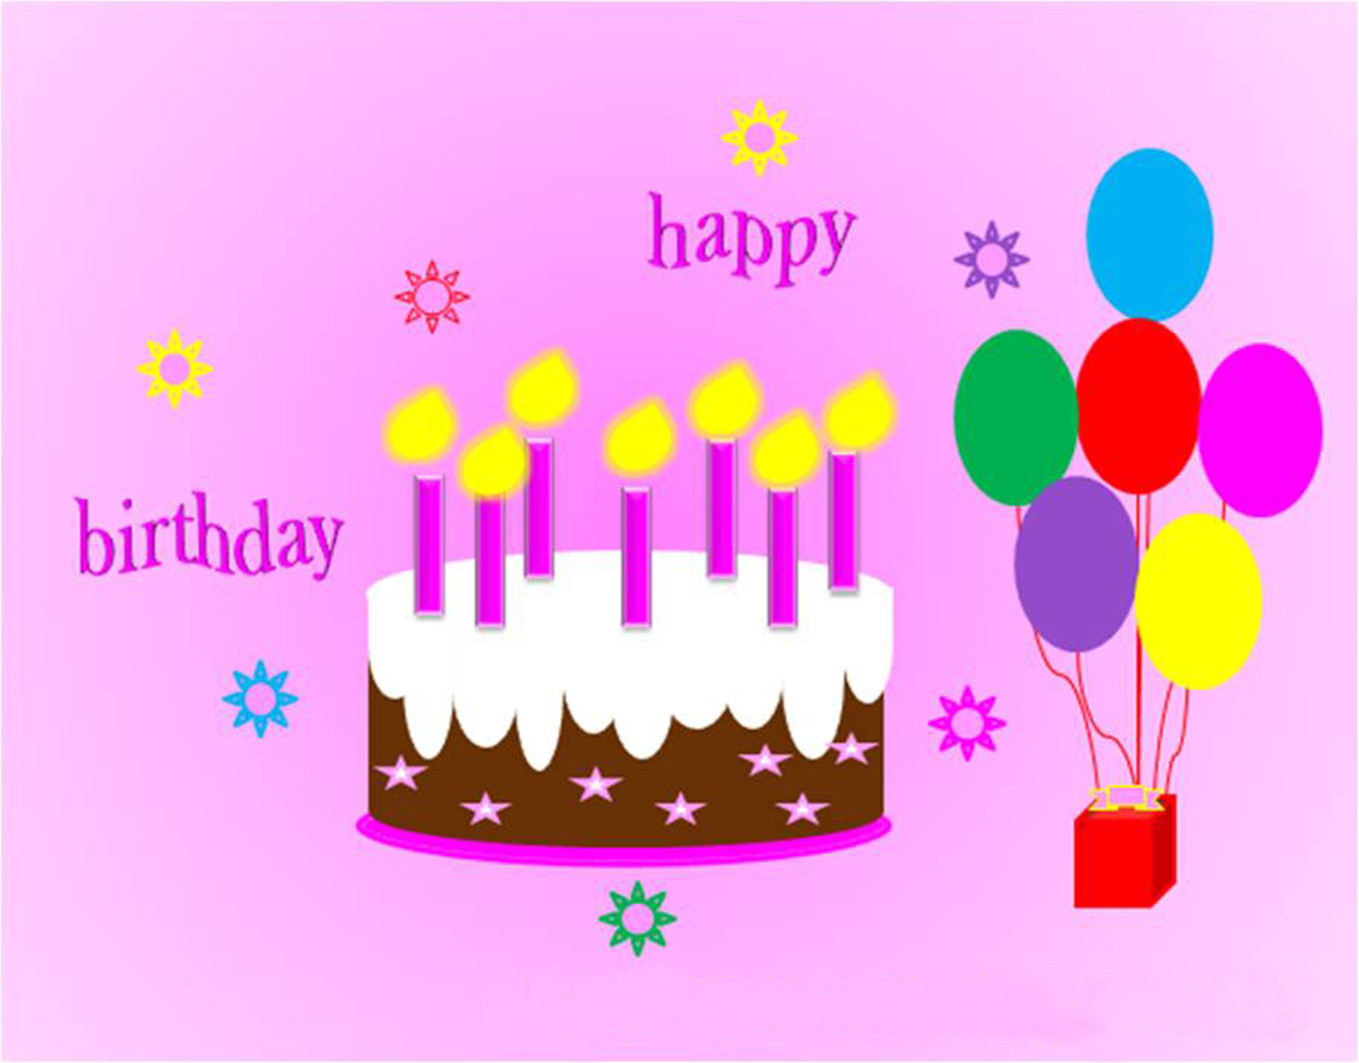 Free Download Birthday Wishes  35 Happy Birthday Cards Free To Download – The WoW Style